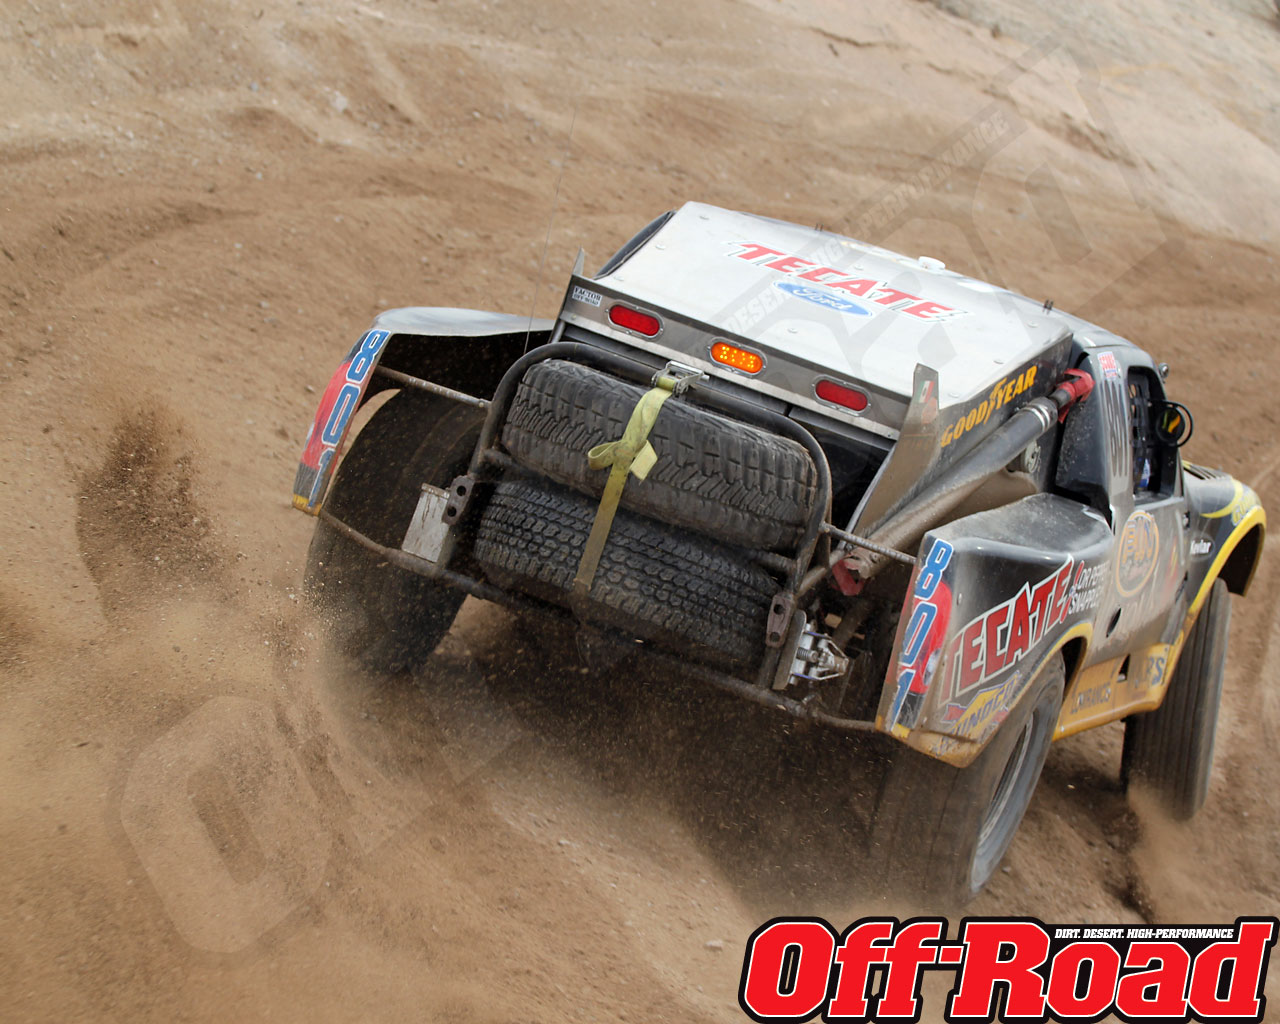 1002or 0981 o+2010 score laughlin desert challenge+off road race trucks